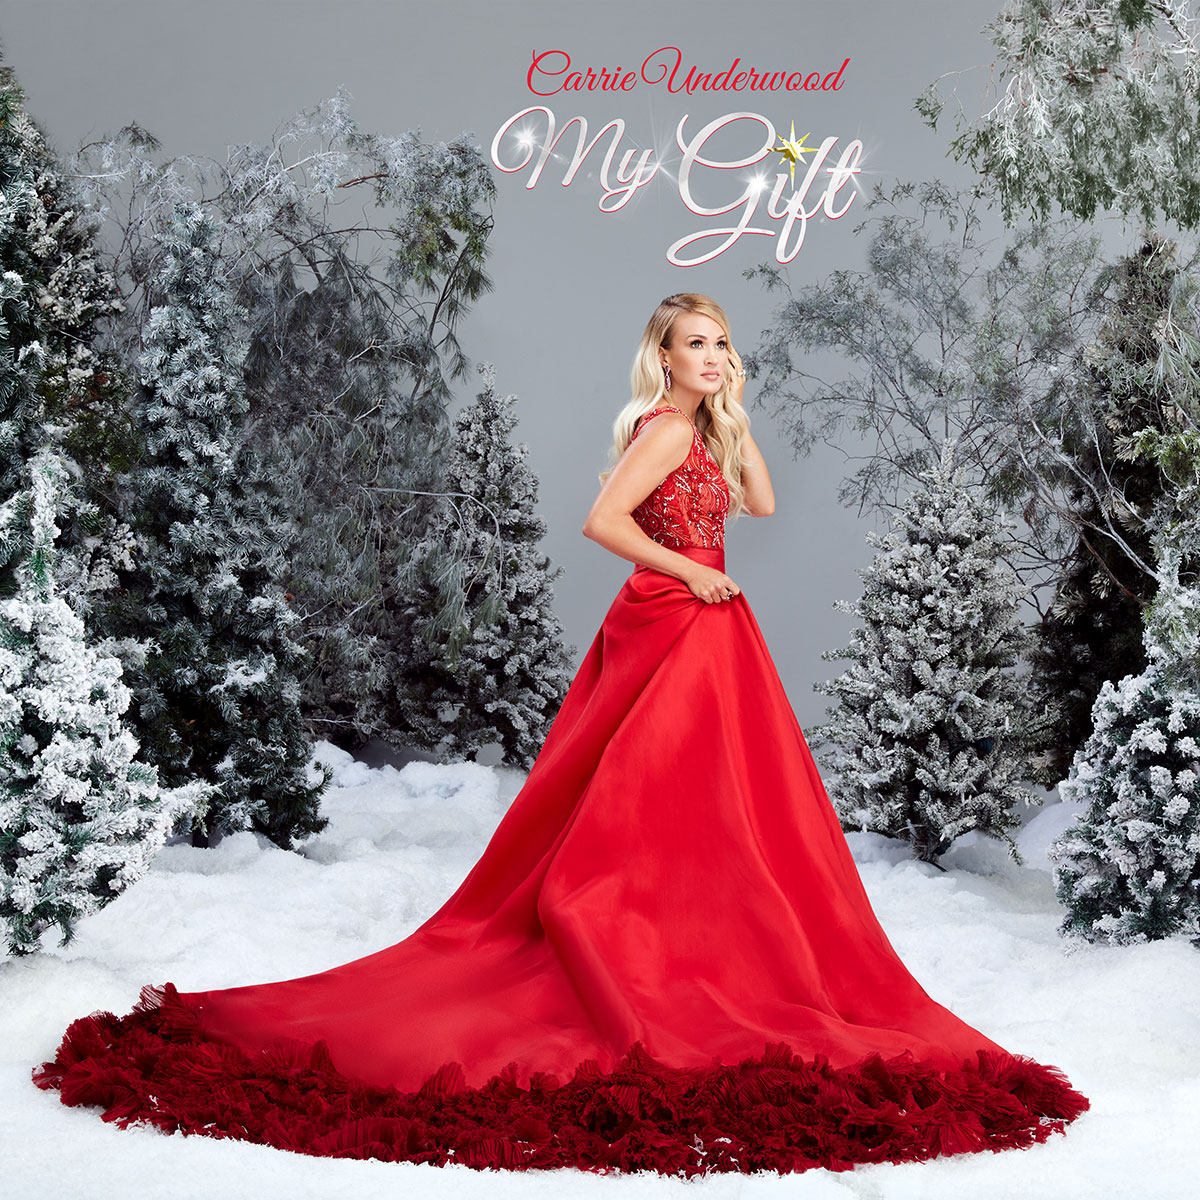 Christmas 2020 Album Releases Carrie Underwood To Release First Ever Christmas Album, MY GIFT